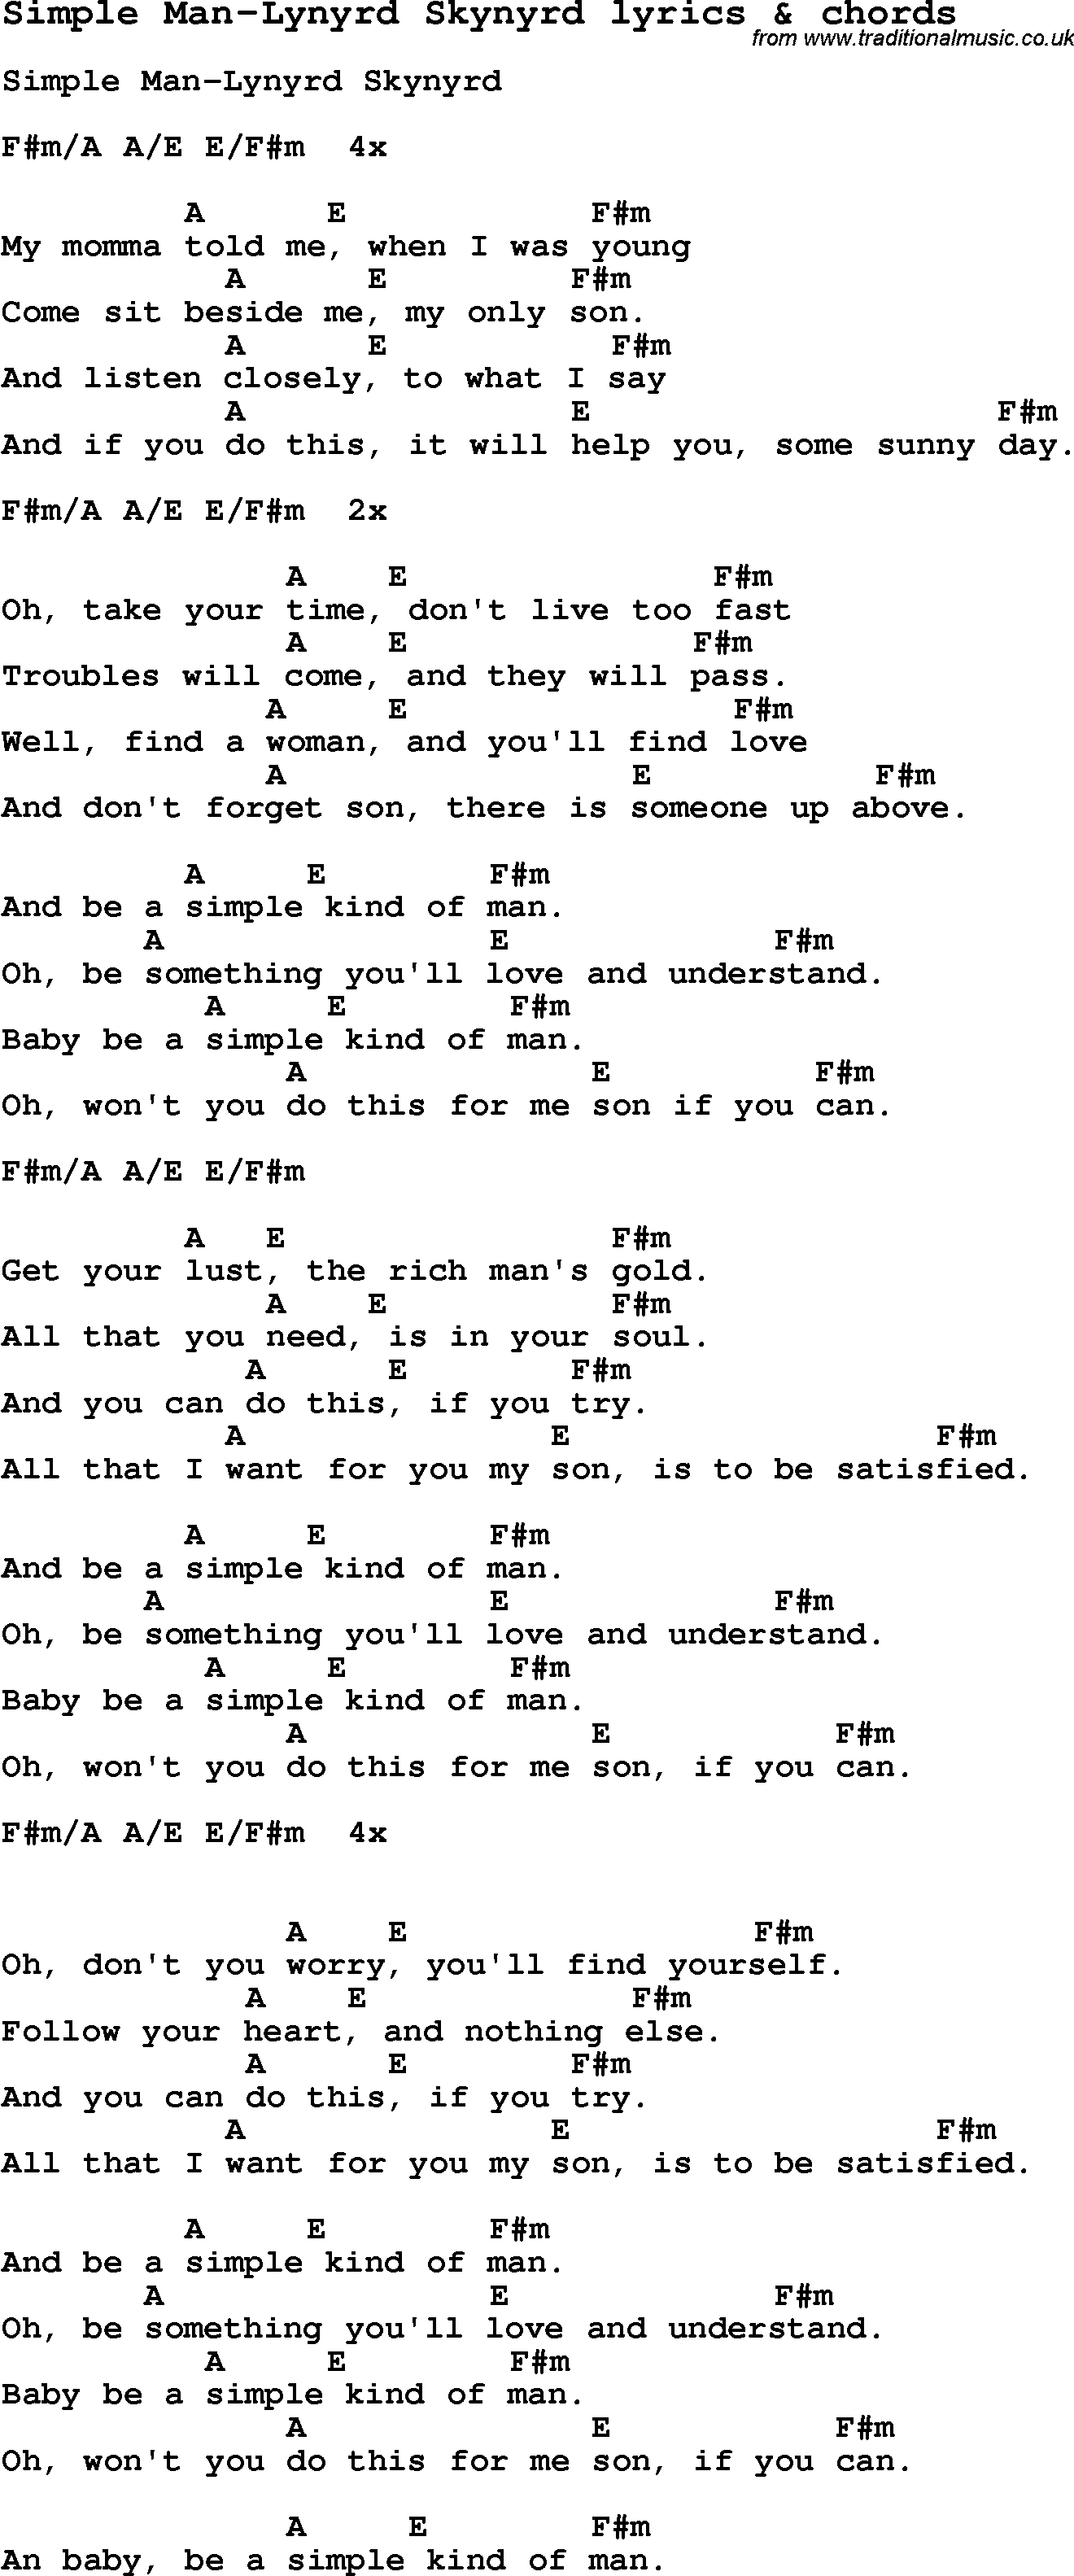 Simple Man Chords Love Song Lyrics Forsimple Man Lynyrd Skynyrd With Chords